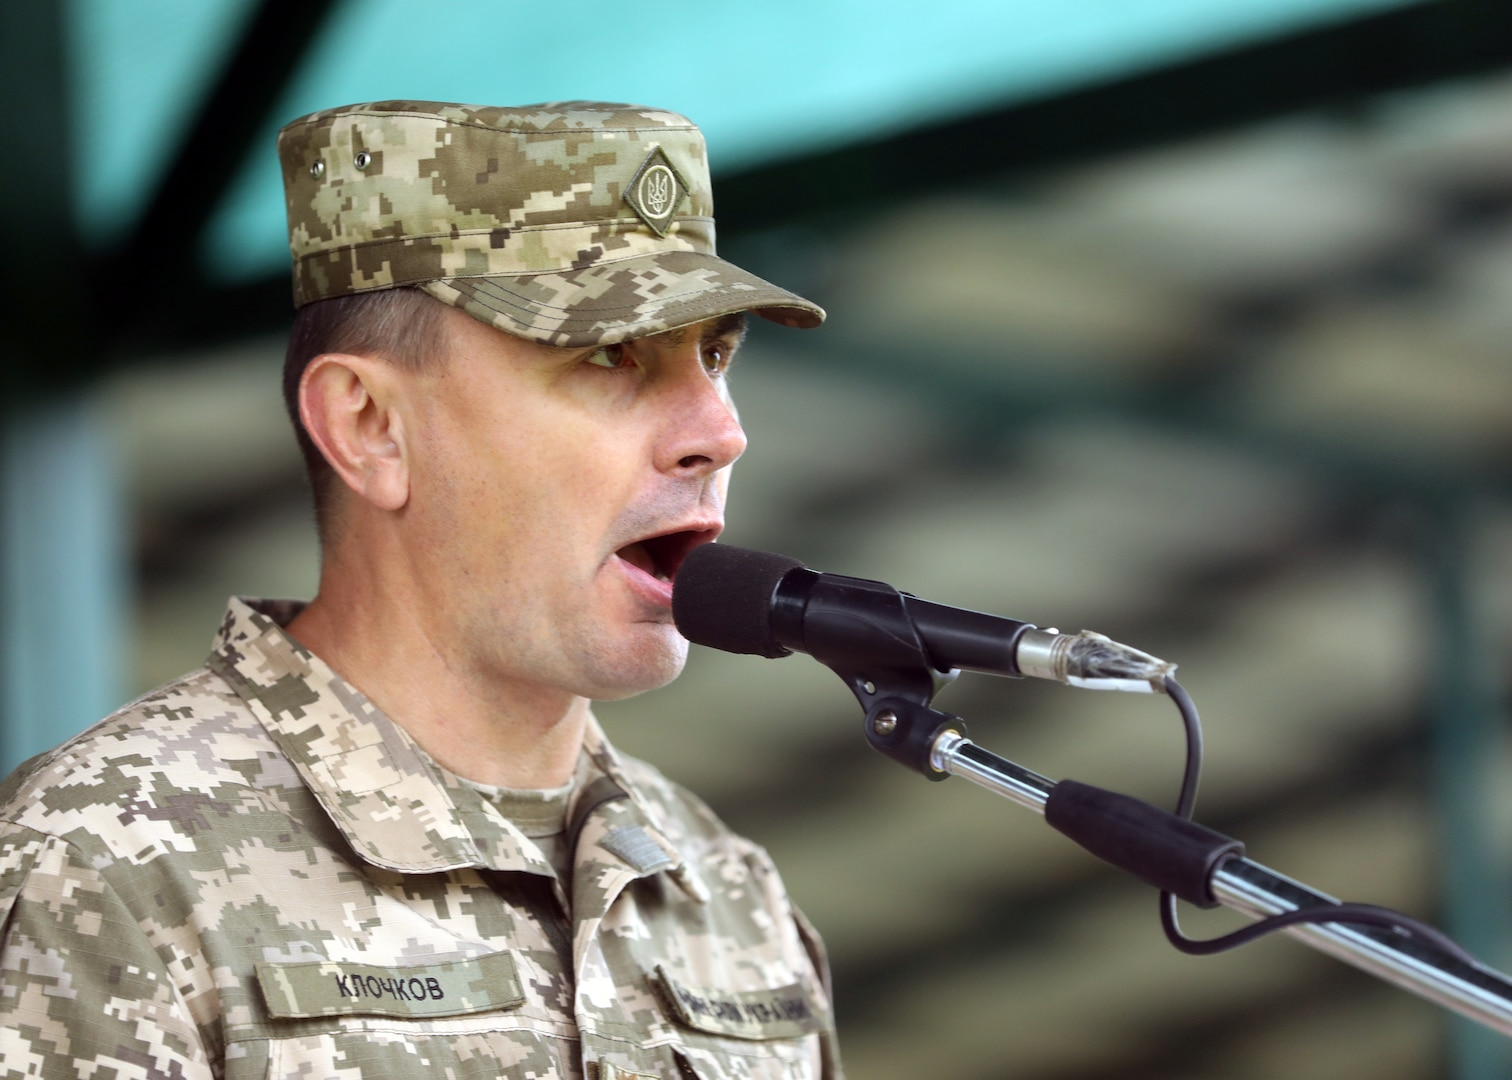 Ukrainian Brig. Gen. Vladyslav Klochkov, co-director of Rapid Trident 21 from the Ukrainian Land Forces, speaks to a multinational force during the opening ceremony for Rapid Trident 21, an annual Ukrainian-American training exercise, Sept. 20, at Central City Stadium, near Yavoriv, Ukraine.